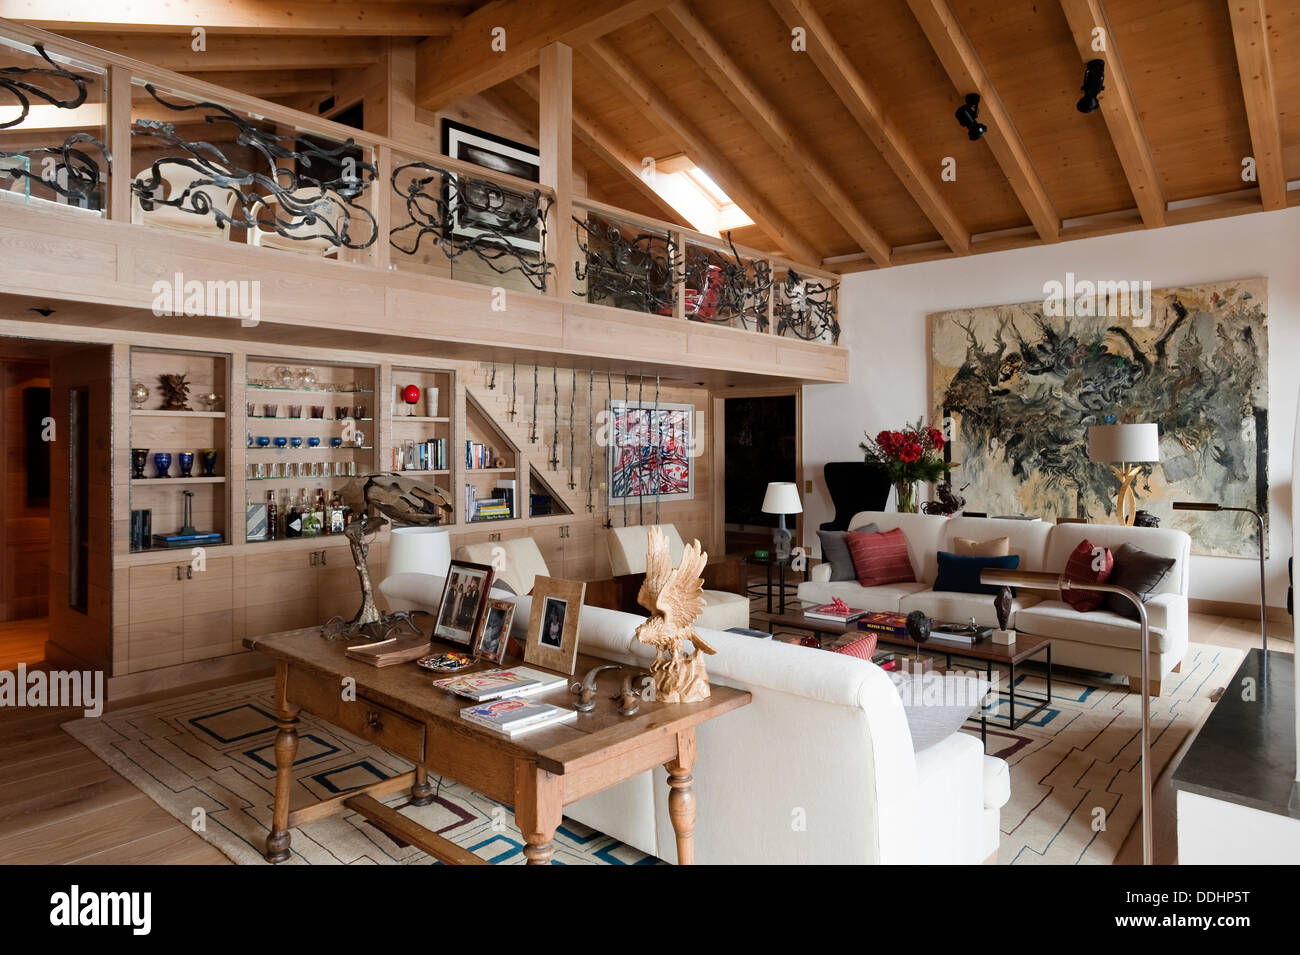 Swiss Chalet with interior designed by Tino Zervudachi Gstaad - Stock Image & Swiss Chalet Interior Stock Photos \u0026 Swiss Chalet Interior Stock ...